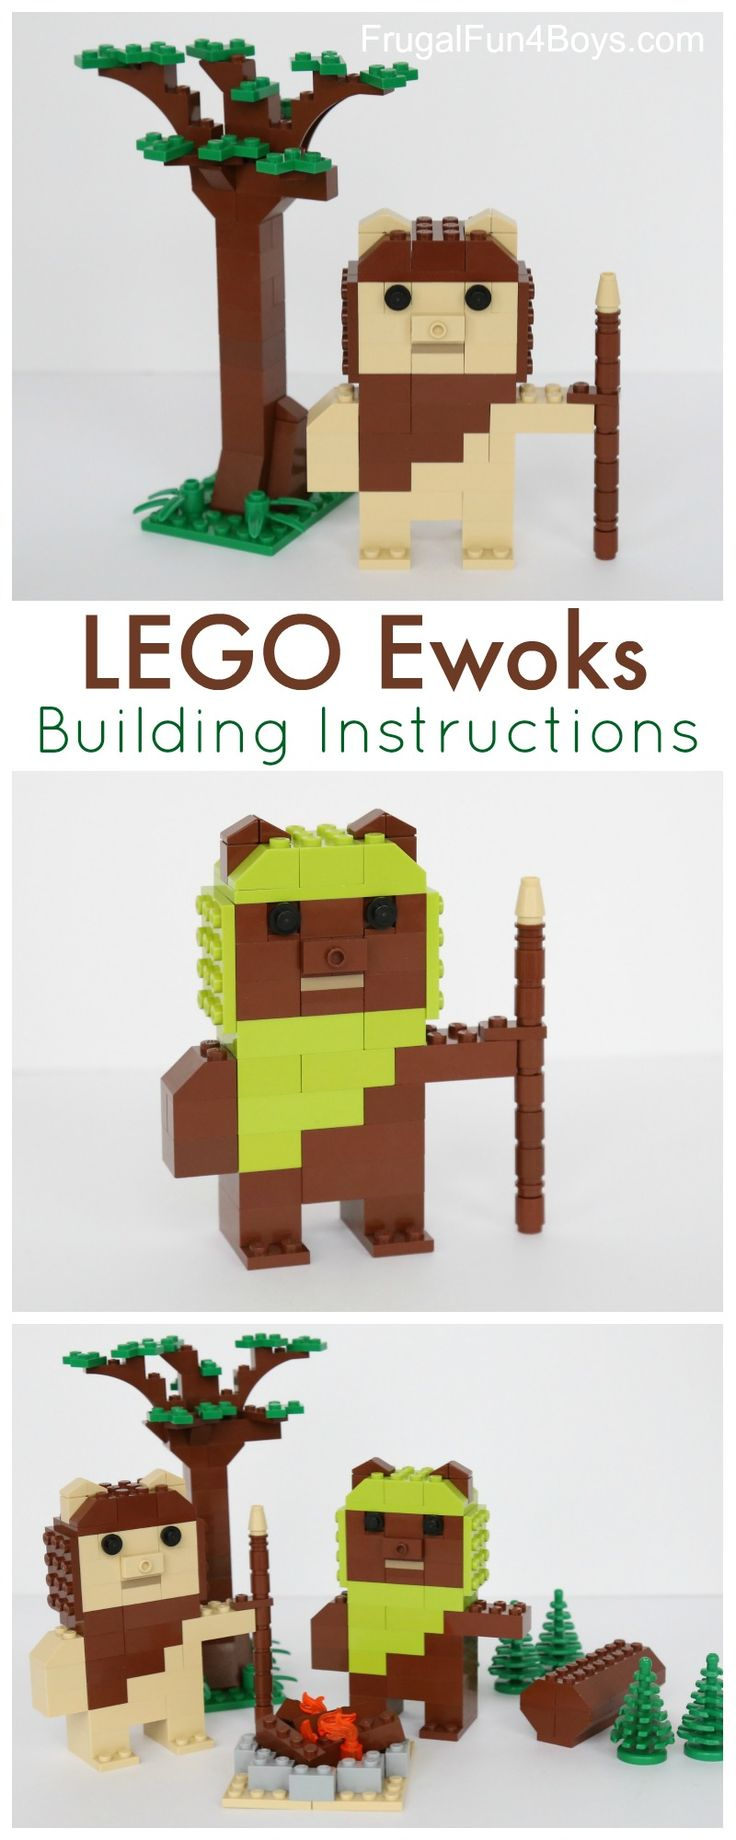 LEGO Ewoks with Building Instructions